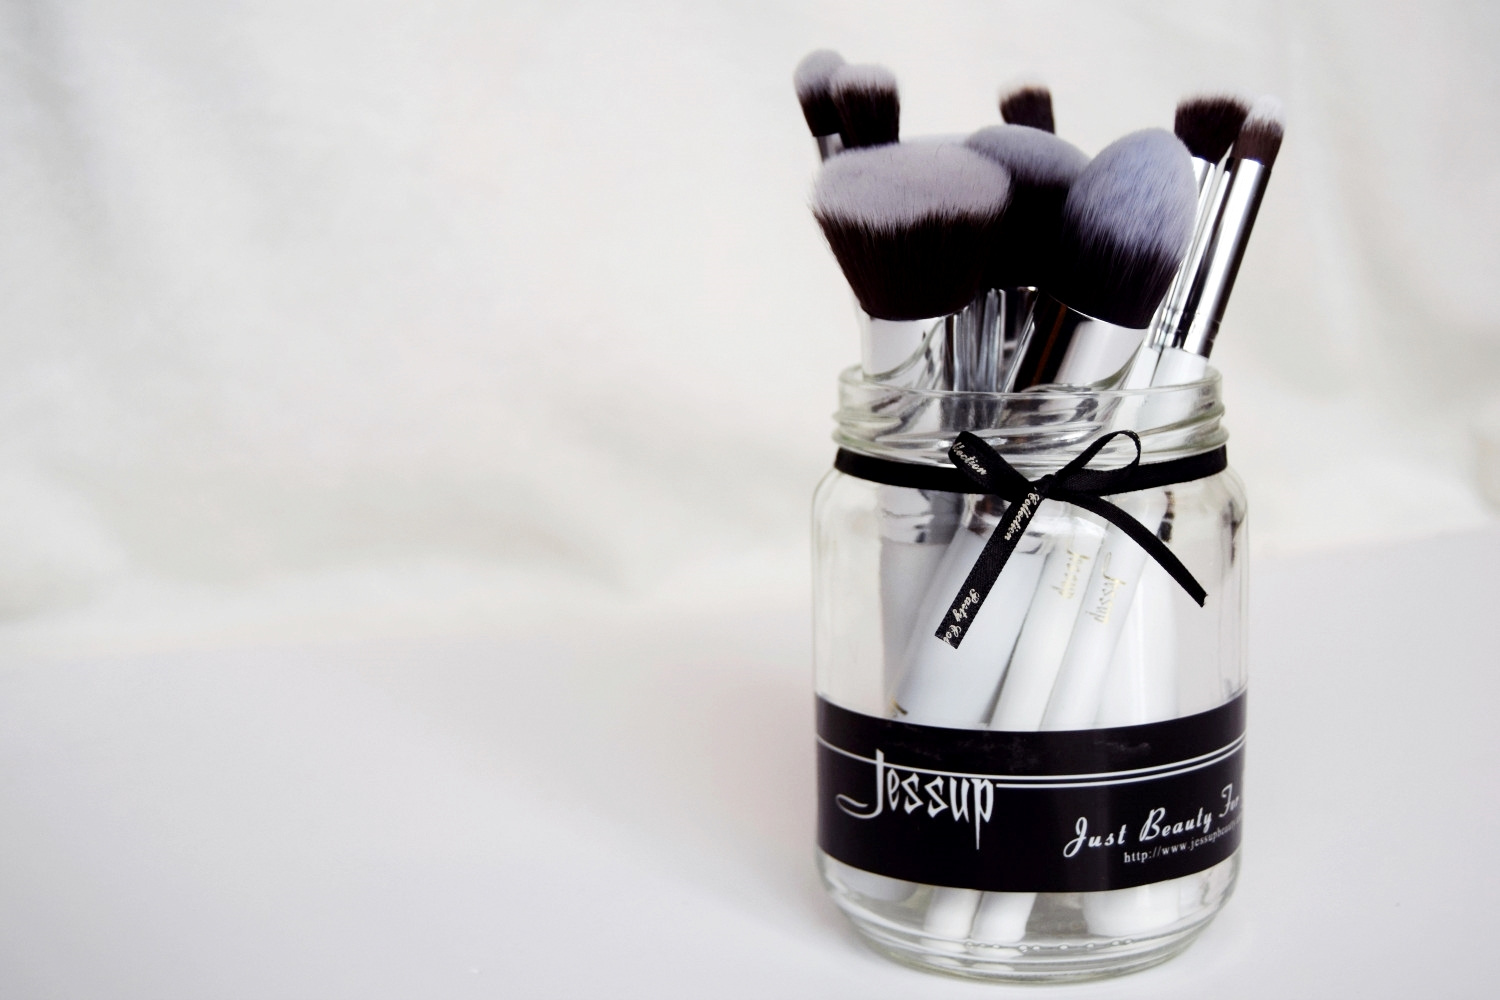 jessup_brushes_review_new_in_zalabell_blog_makeup_beauty_6